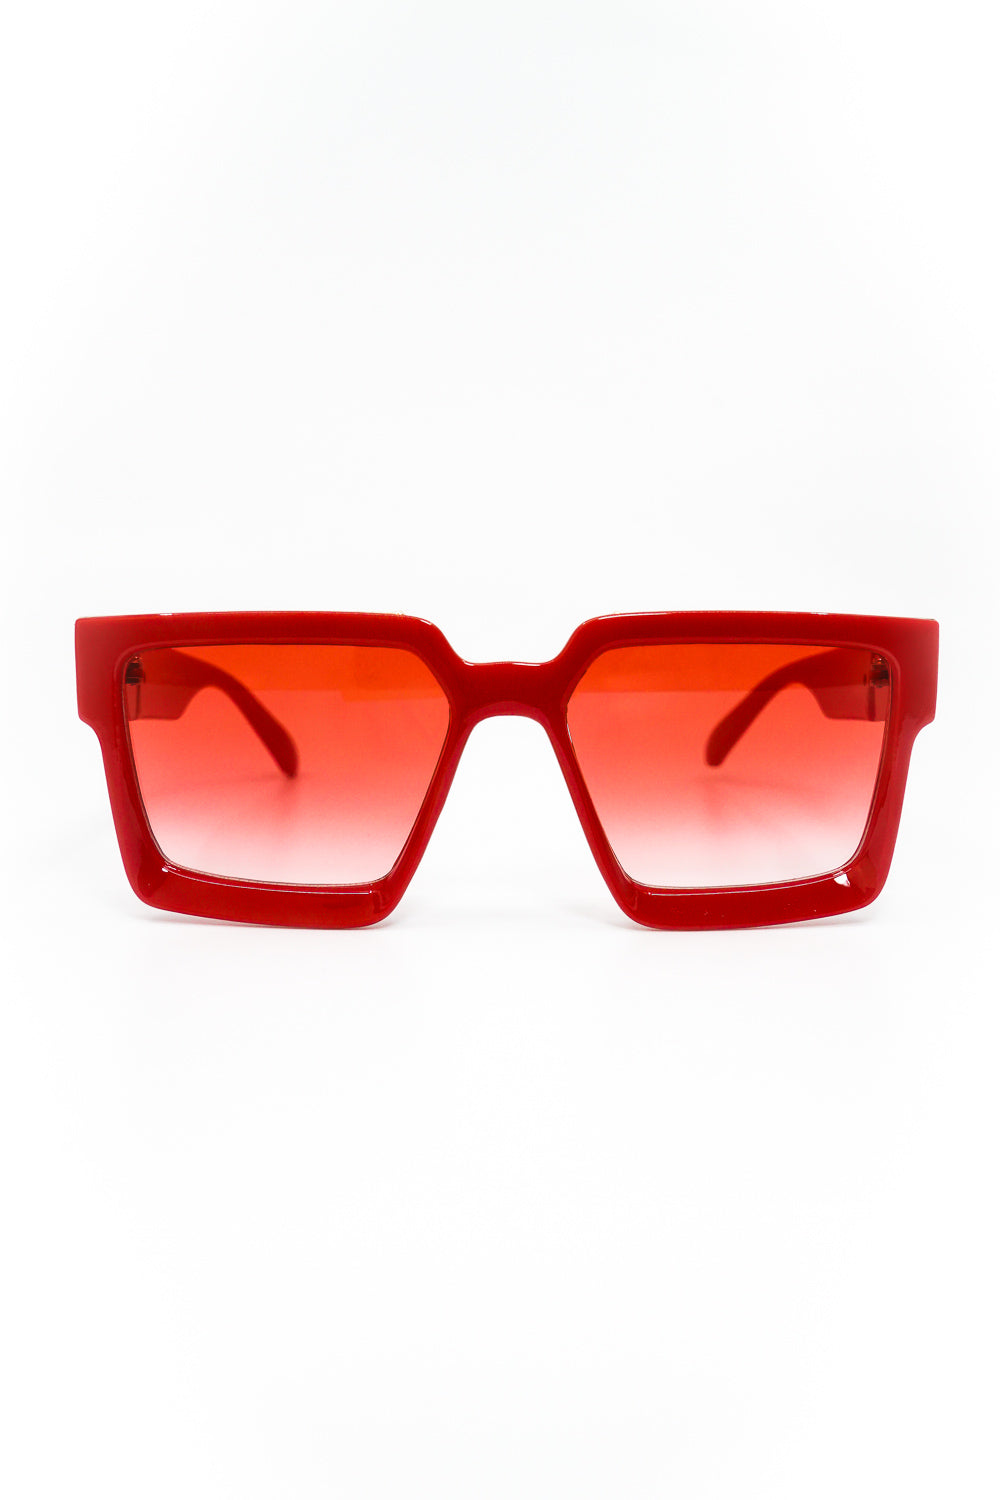 Seasons Hottest Thickened Square Frame Sunglasses in Red - Fashion House USA